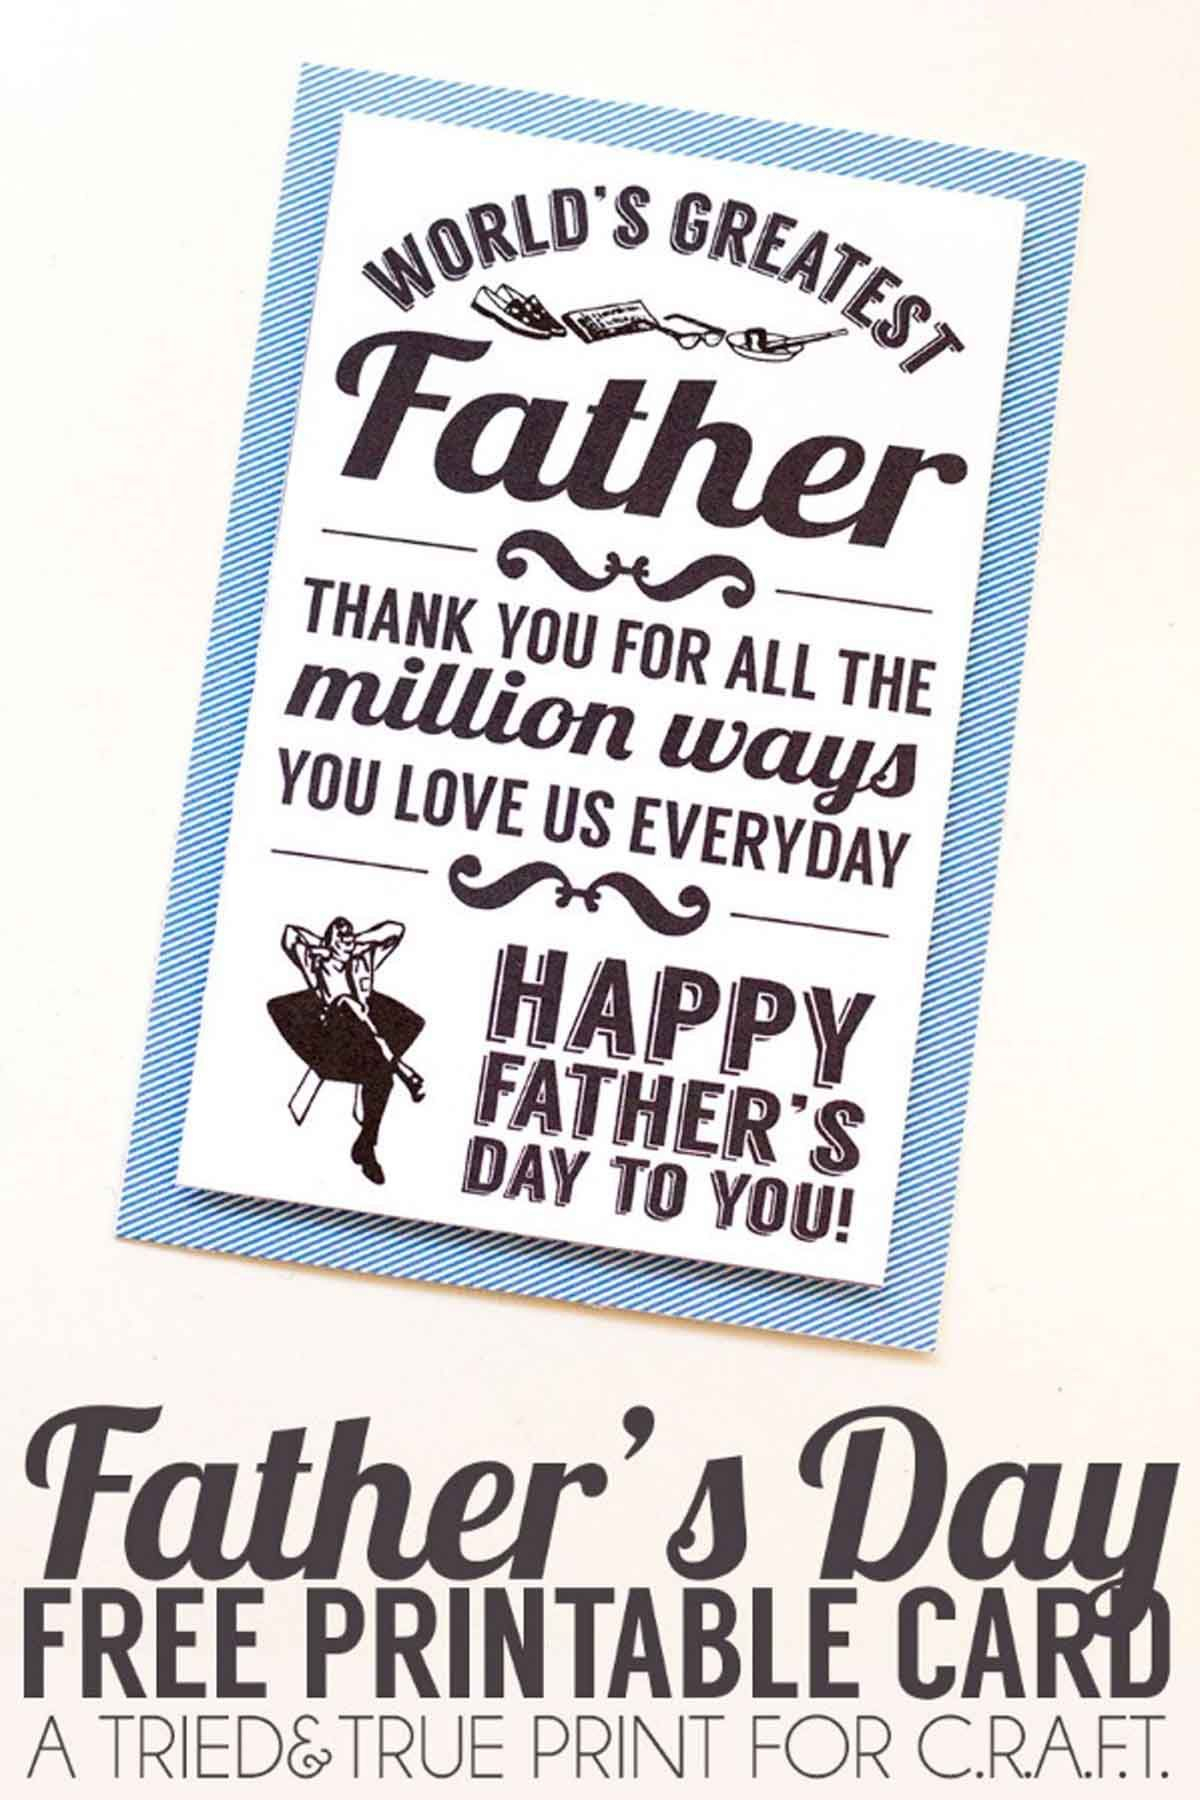 16 Fun And Free Printable Father's Day Cards | Perfect Gift - Free Printable Father's Day Card From Wife To Husband